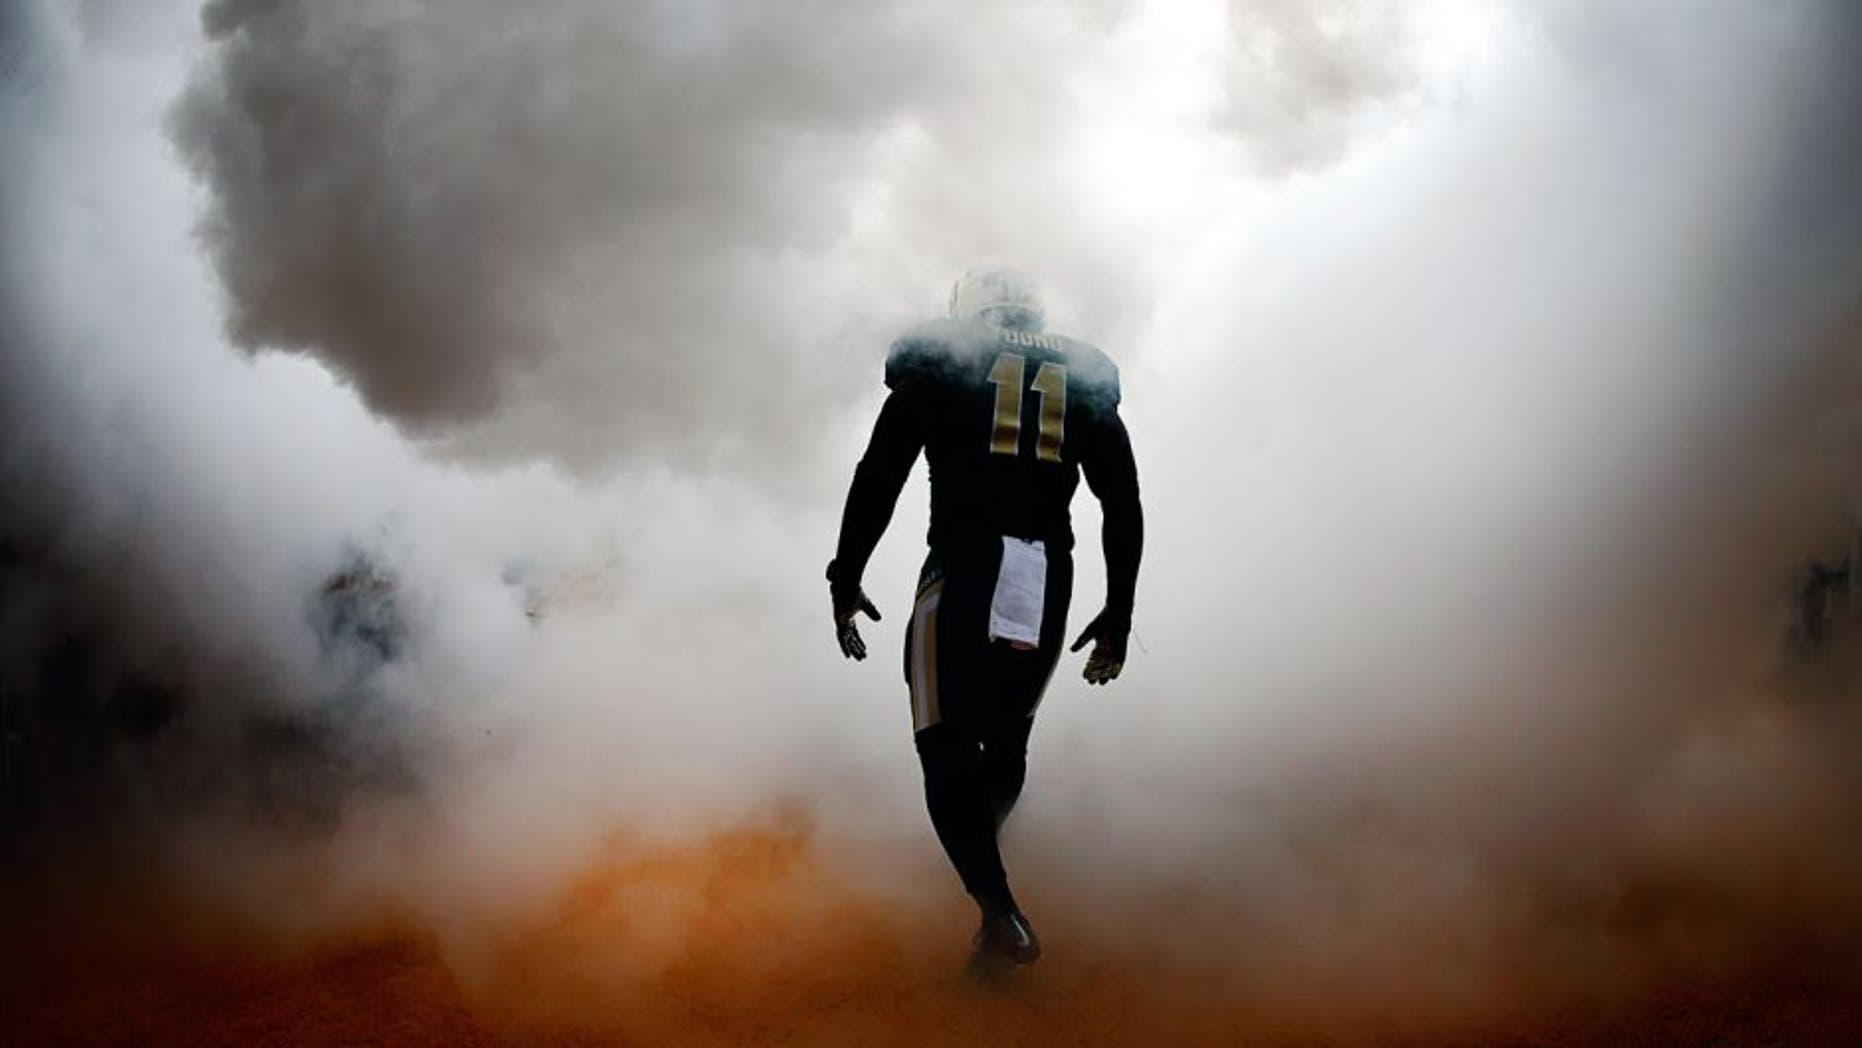 WACO, TX - OCTOBER 11: Taylor Young #11 of the Baylor Bears walks on the field before taking on the TCU Horned Frogs at McLane Stadium on October 11, 2014 in Waco, Texas. (Photo by Tom Pennington/Getty Images)